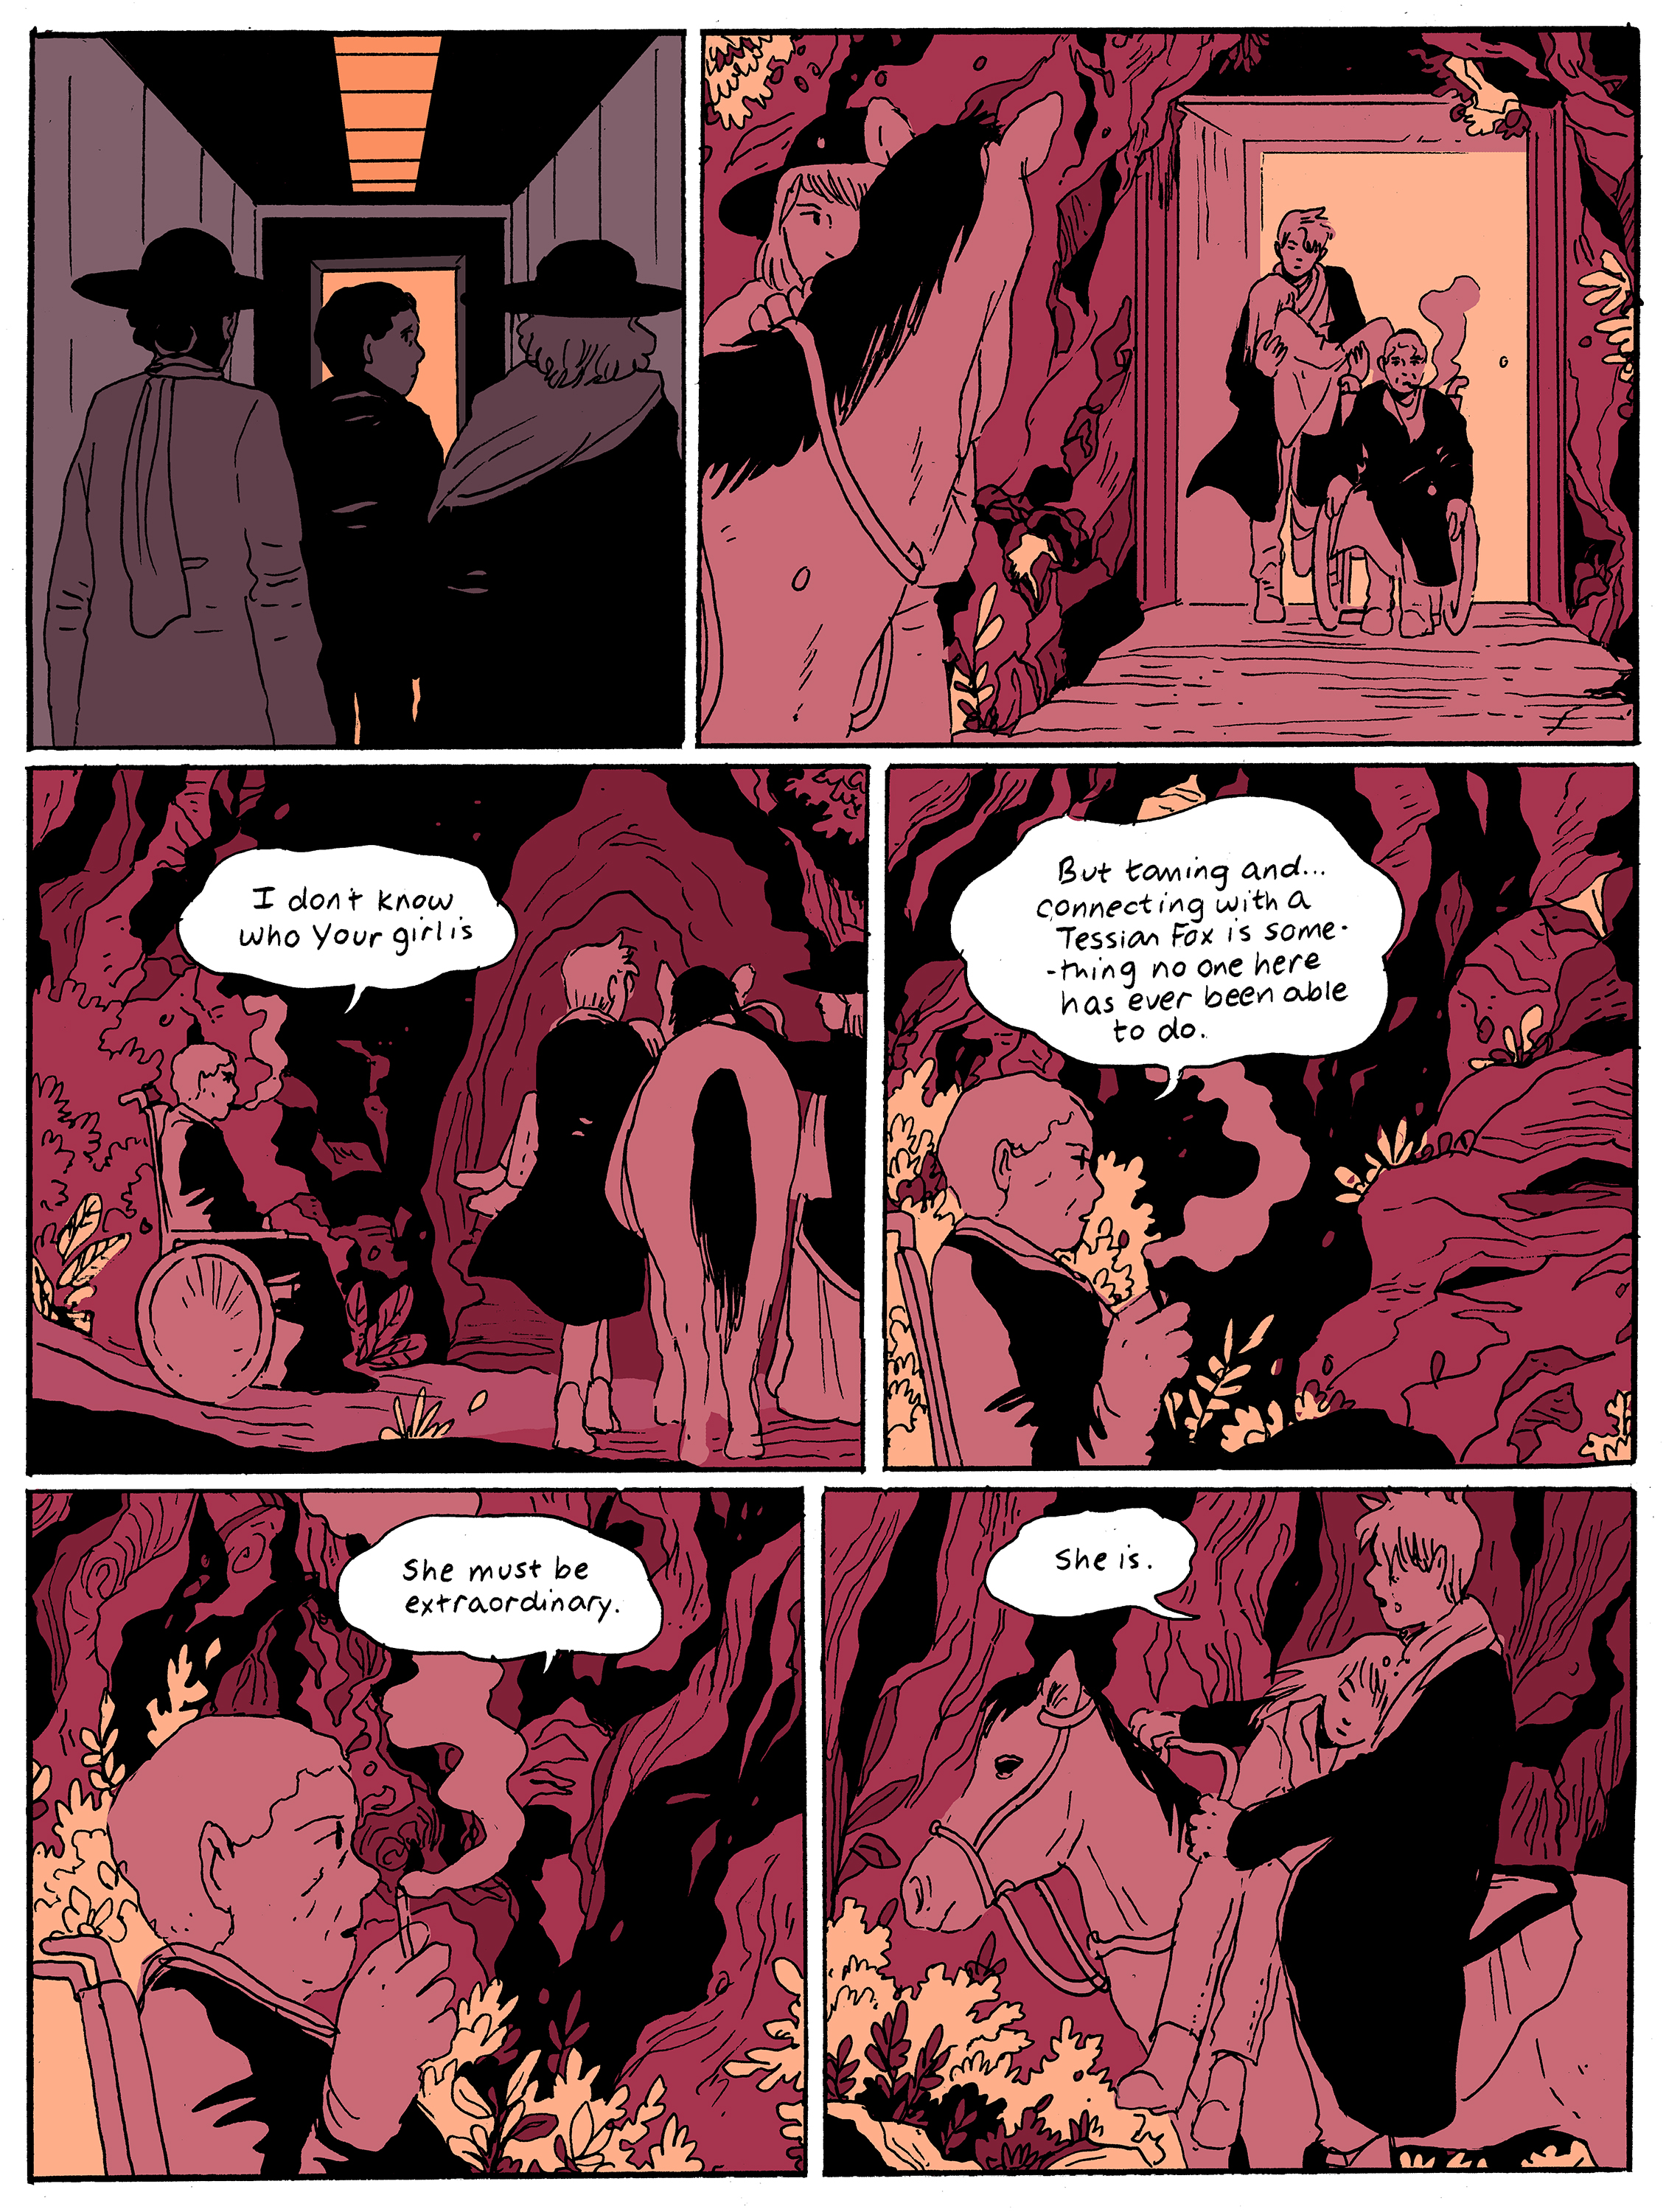 chapter18_page07.jpg